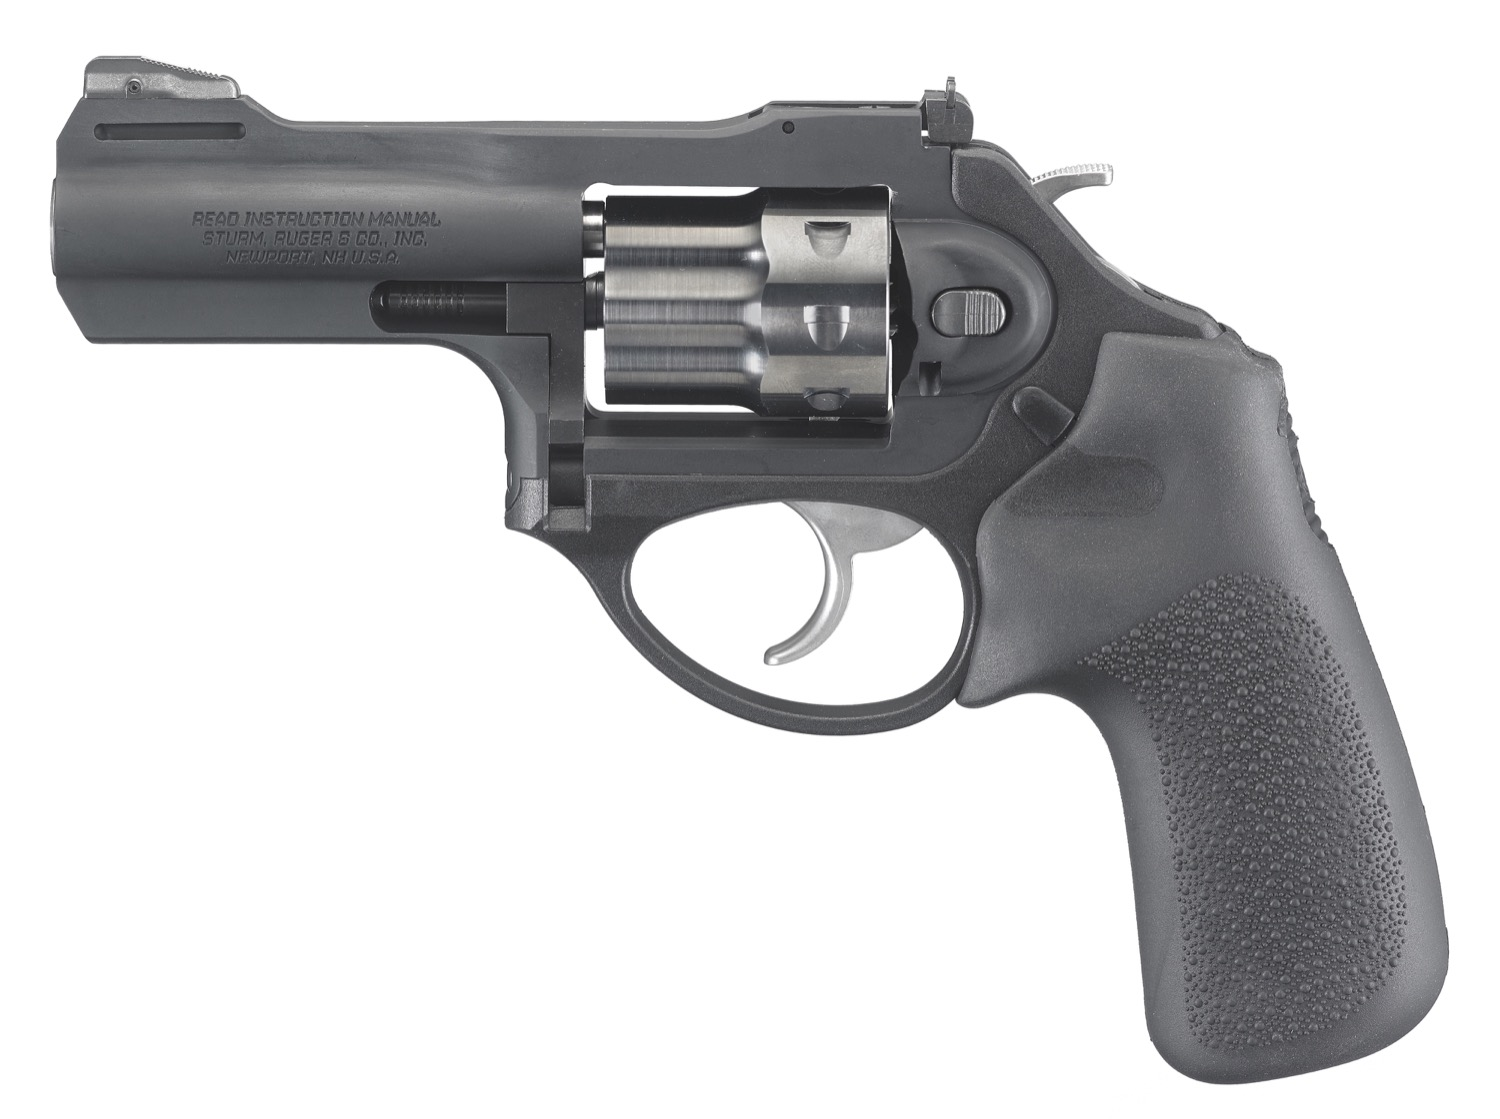 ruger lcrx double action revolver model 5435